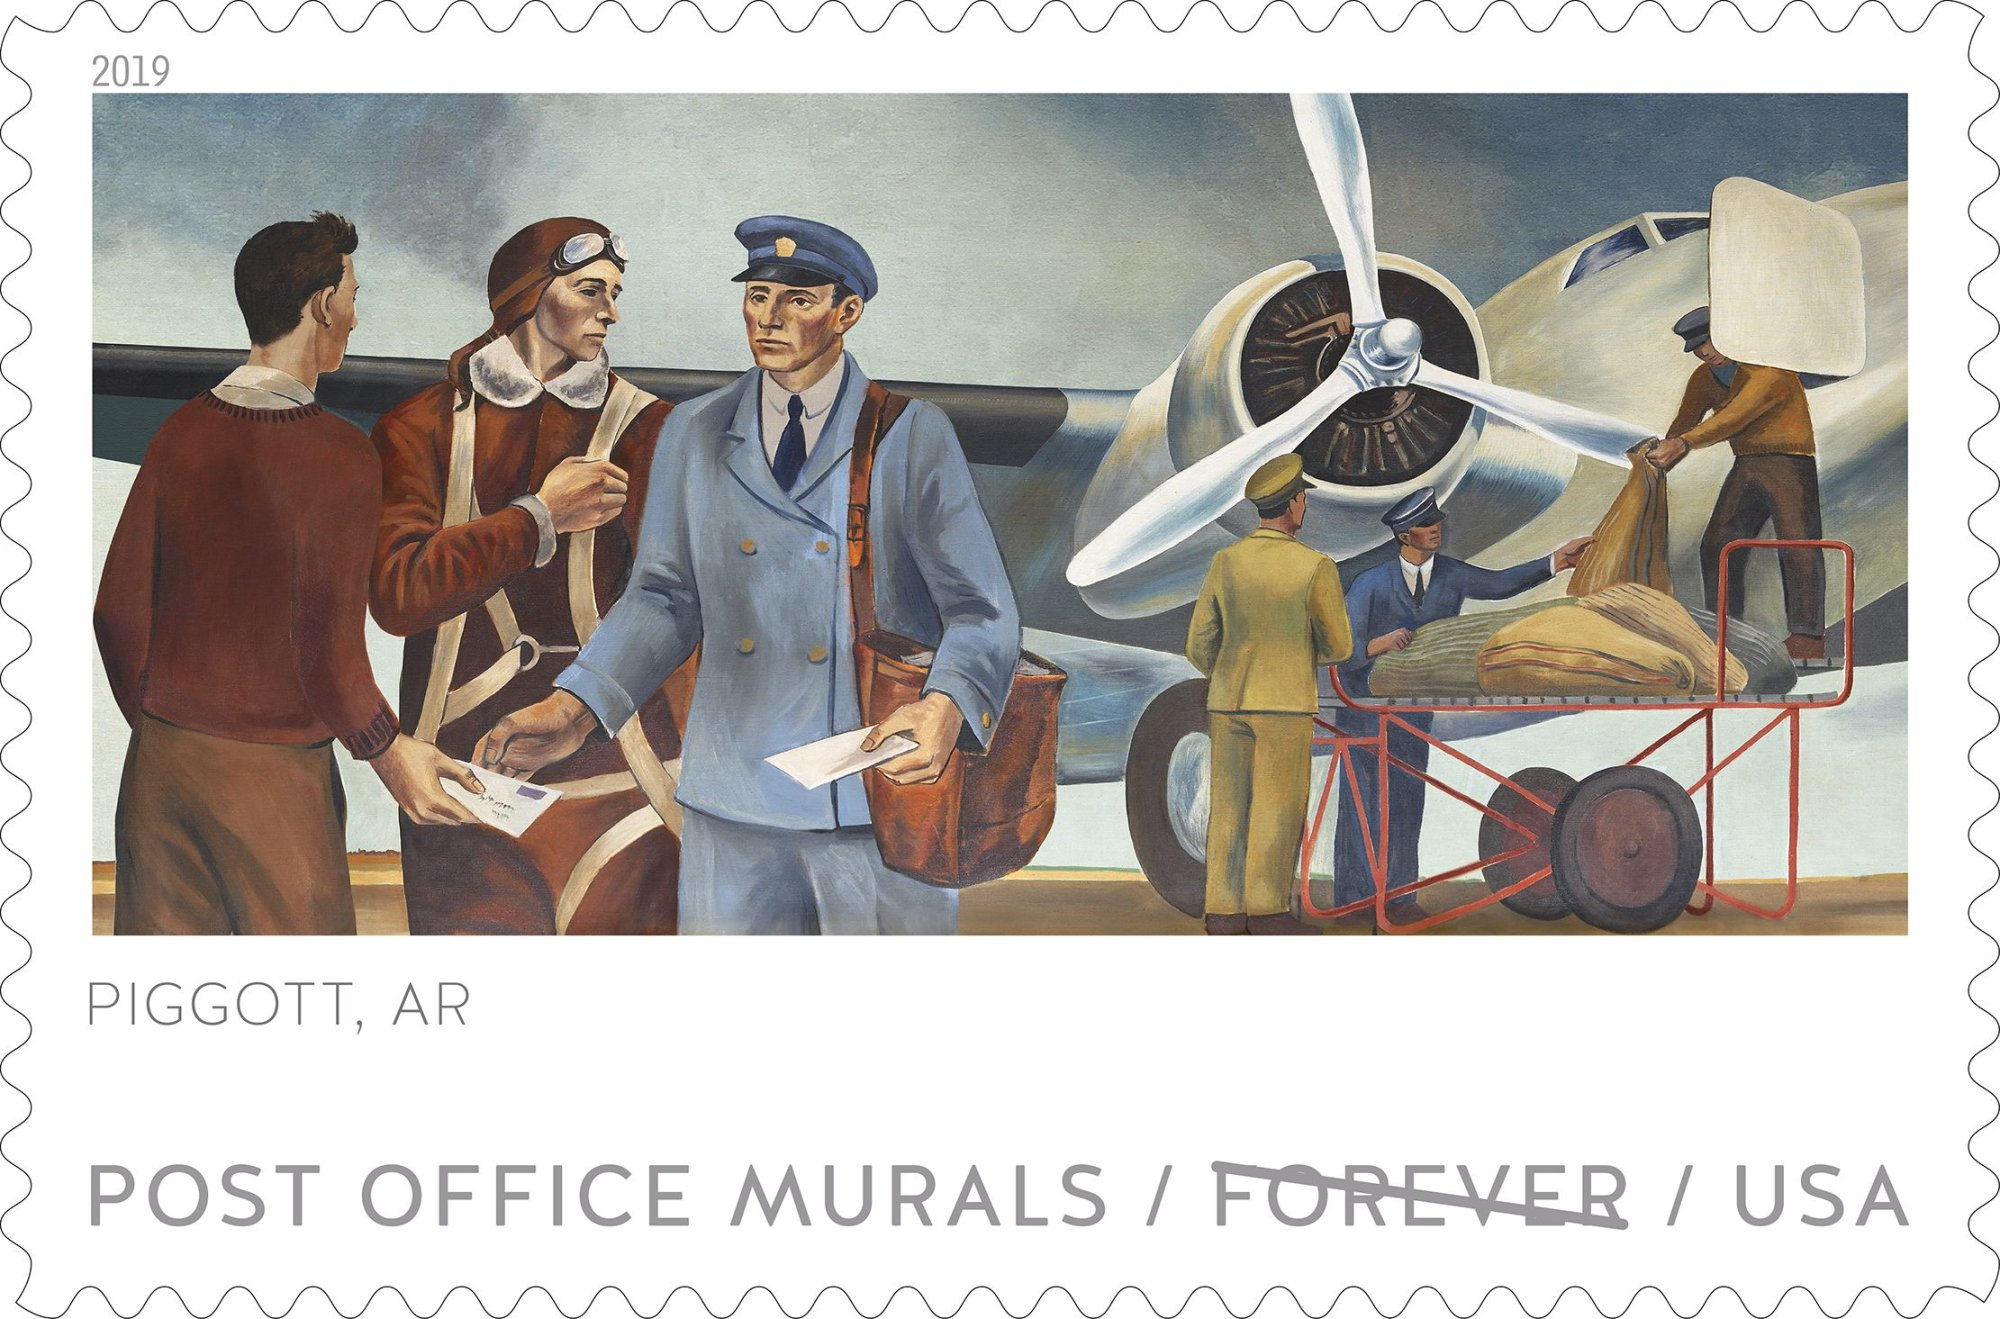 New Stamps Depicting Post Office Murals Will Include Those From